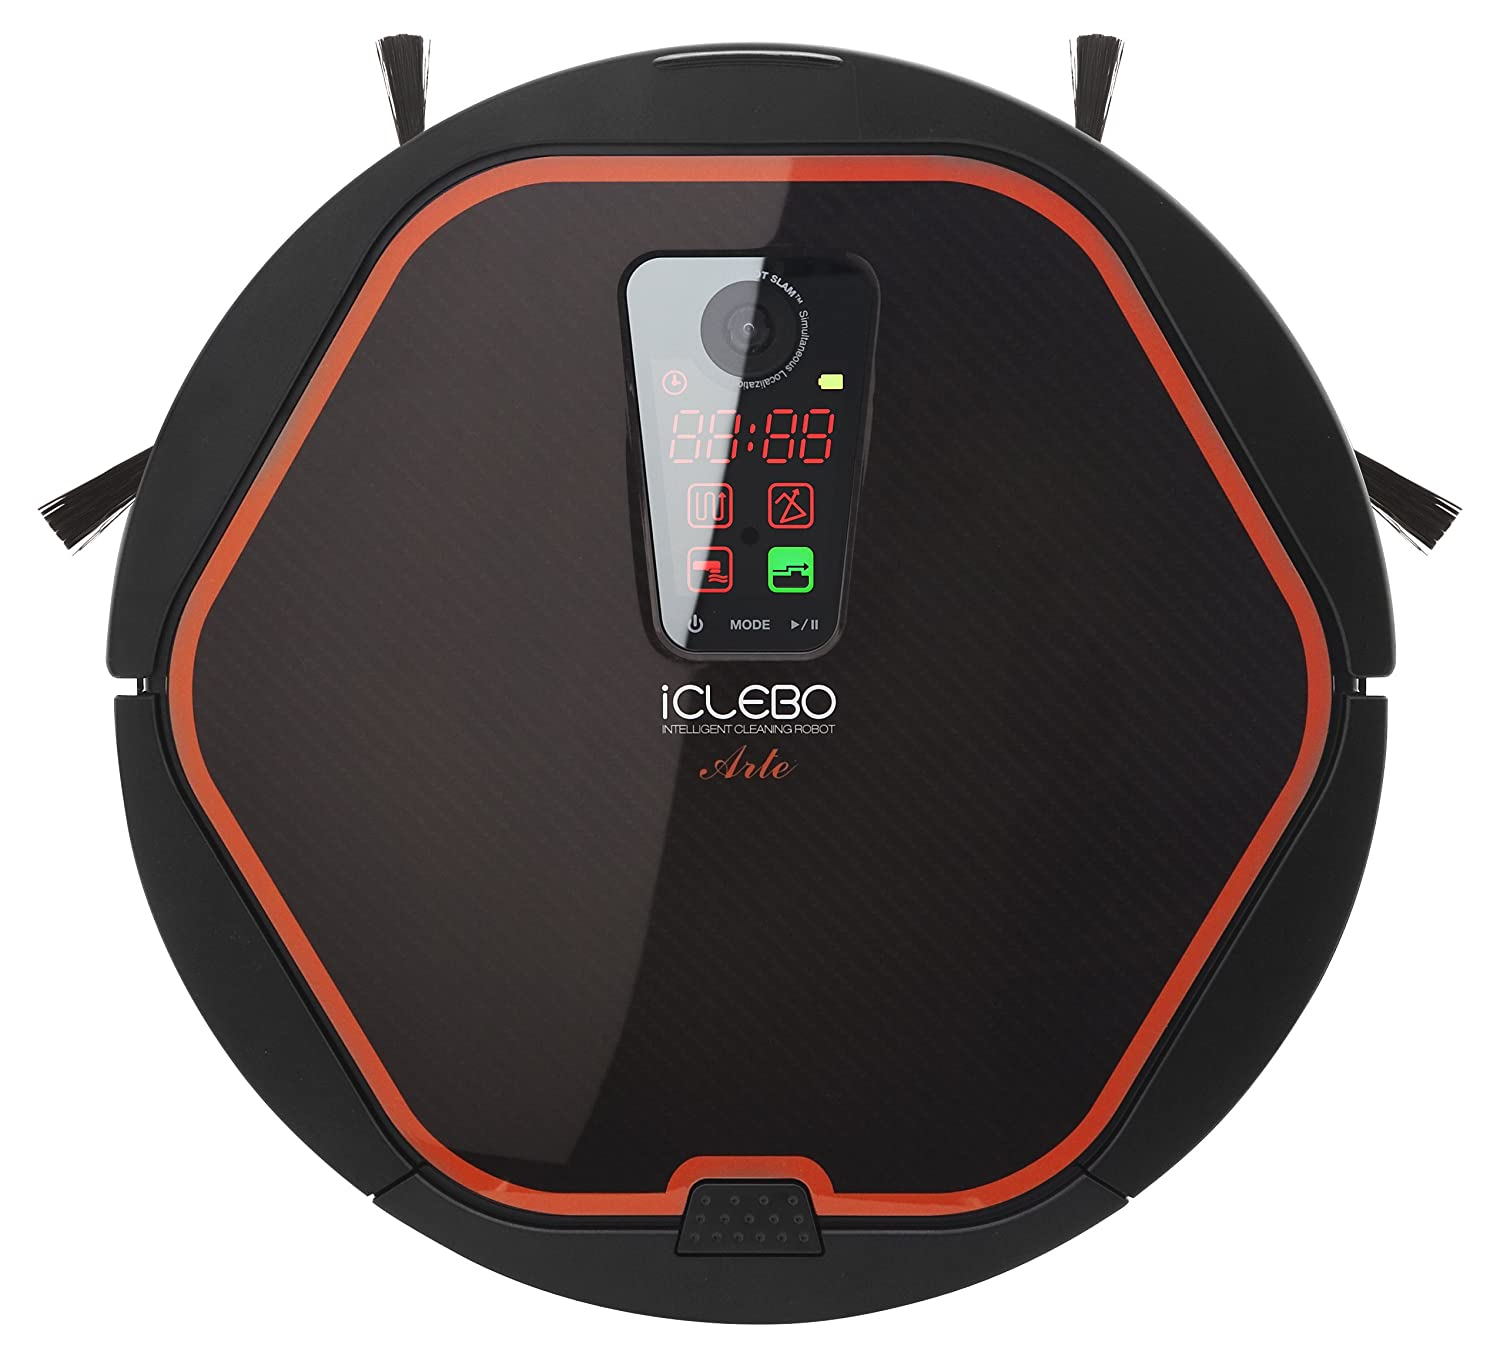 iClebo Arte Robot Vacuum Wet Mop All-Surface Cleaner, Good for Carpet & Hardwood Floor, Self-Cleans with Advanced Navigation Remote Control Camera-Mapping Technology